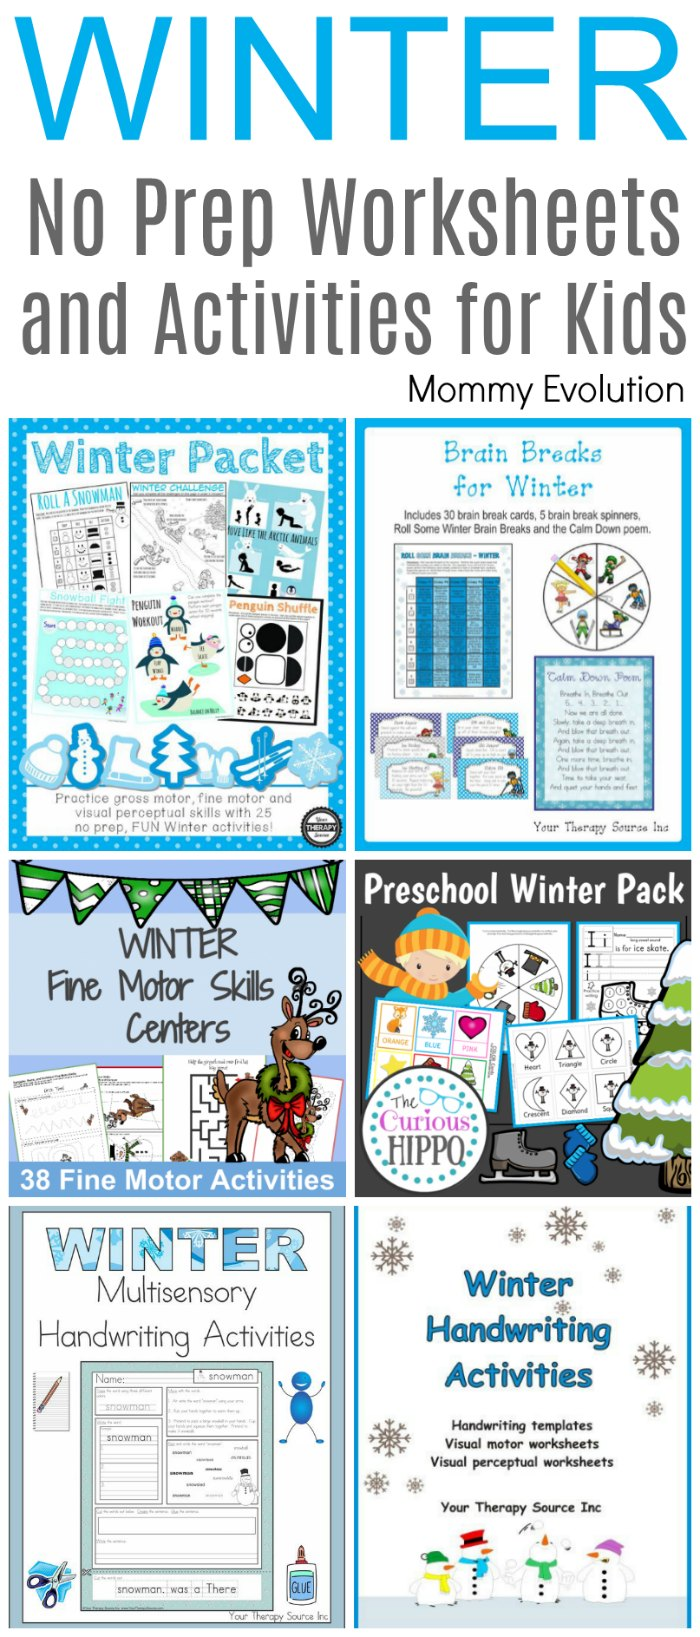 Workbooks visual discrimination worksheets : No Prep Winter Worksheets and Activities | Mommy Evolution